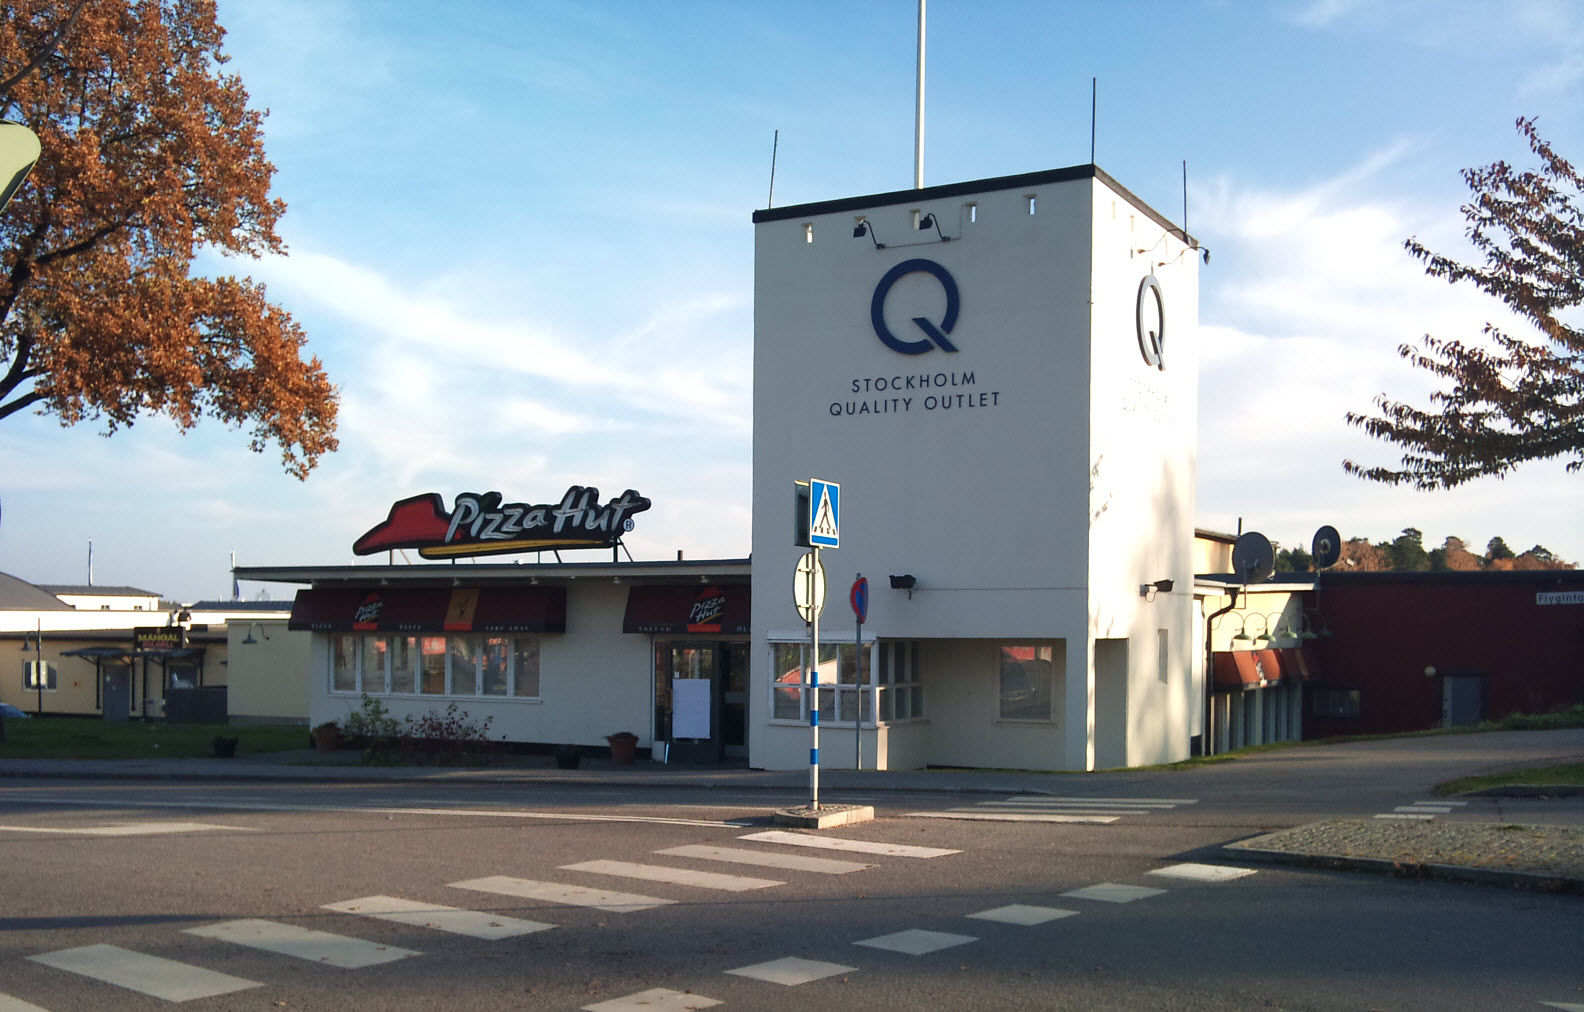 78322fdacb6 Stockholm Quality Outlet – Wikipedia